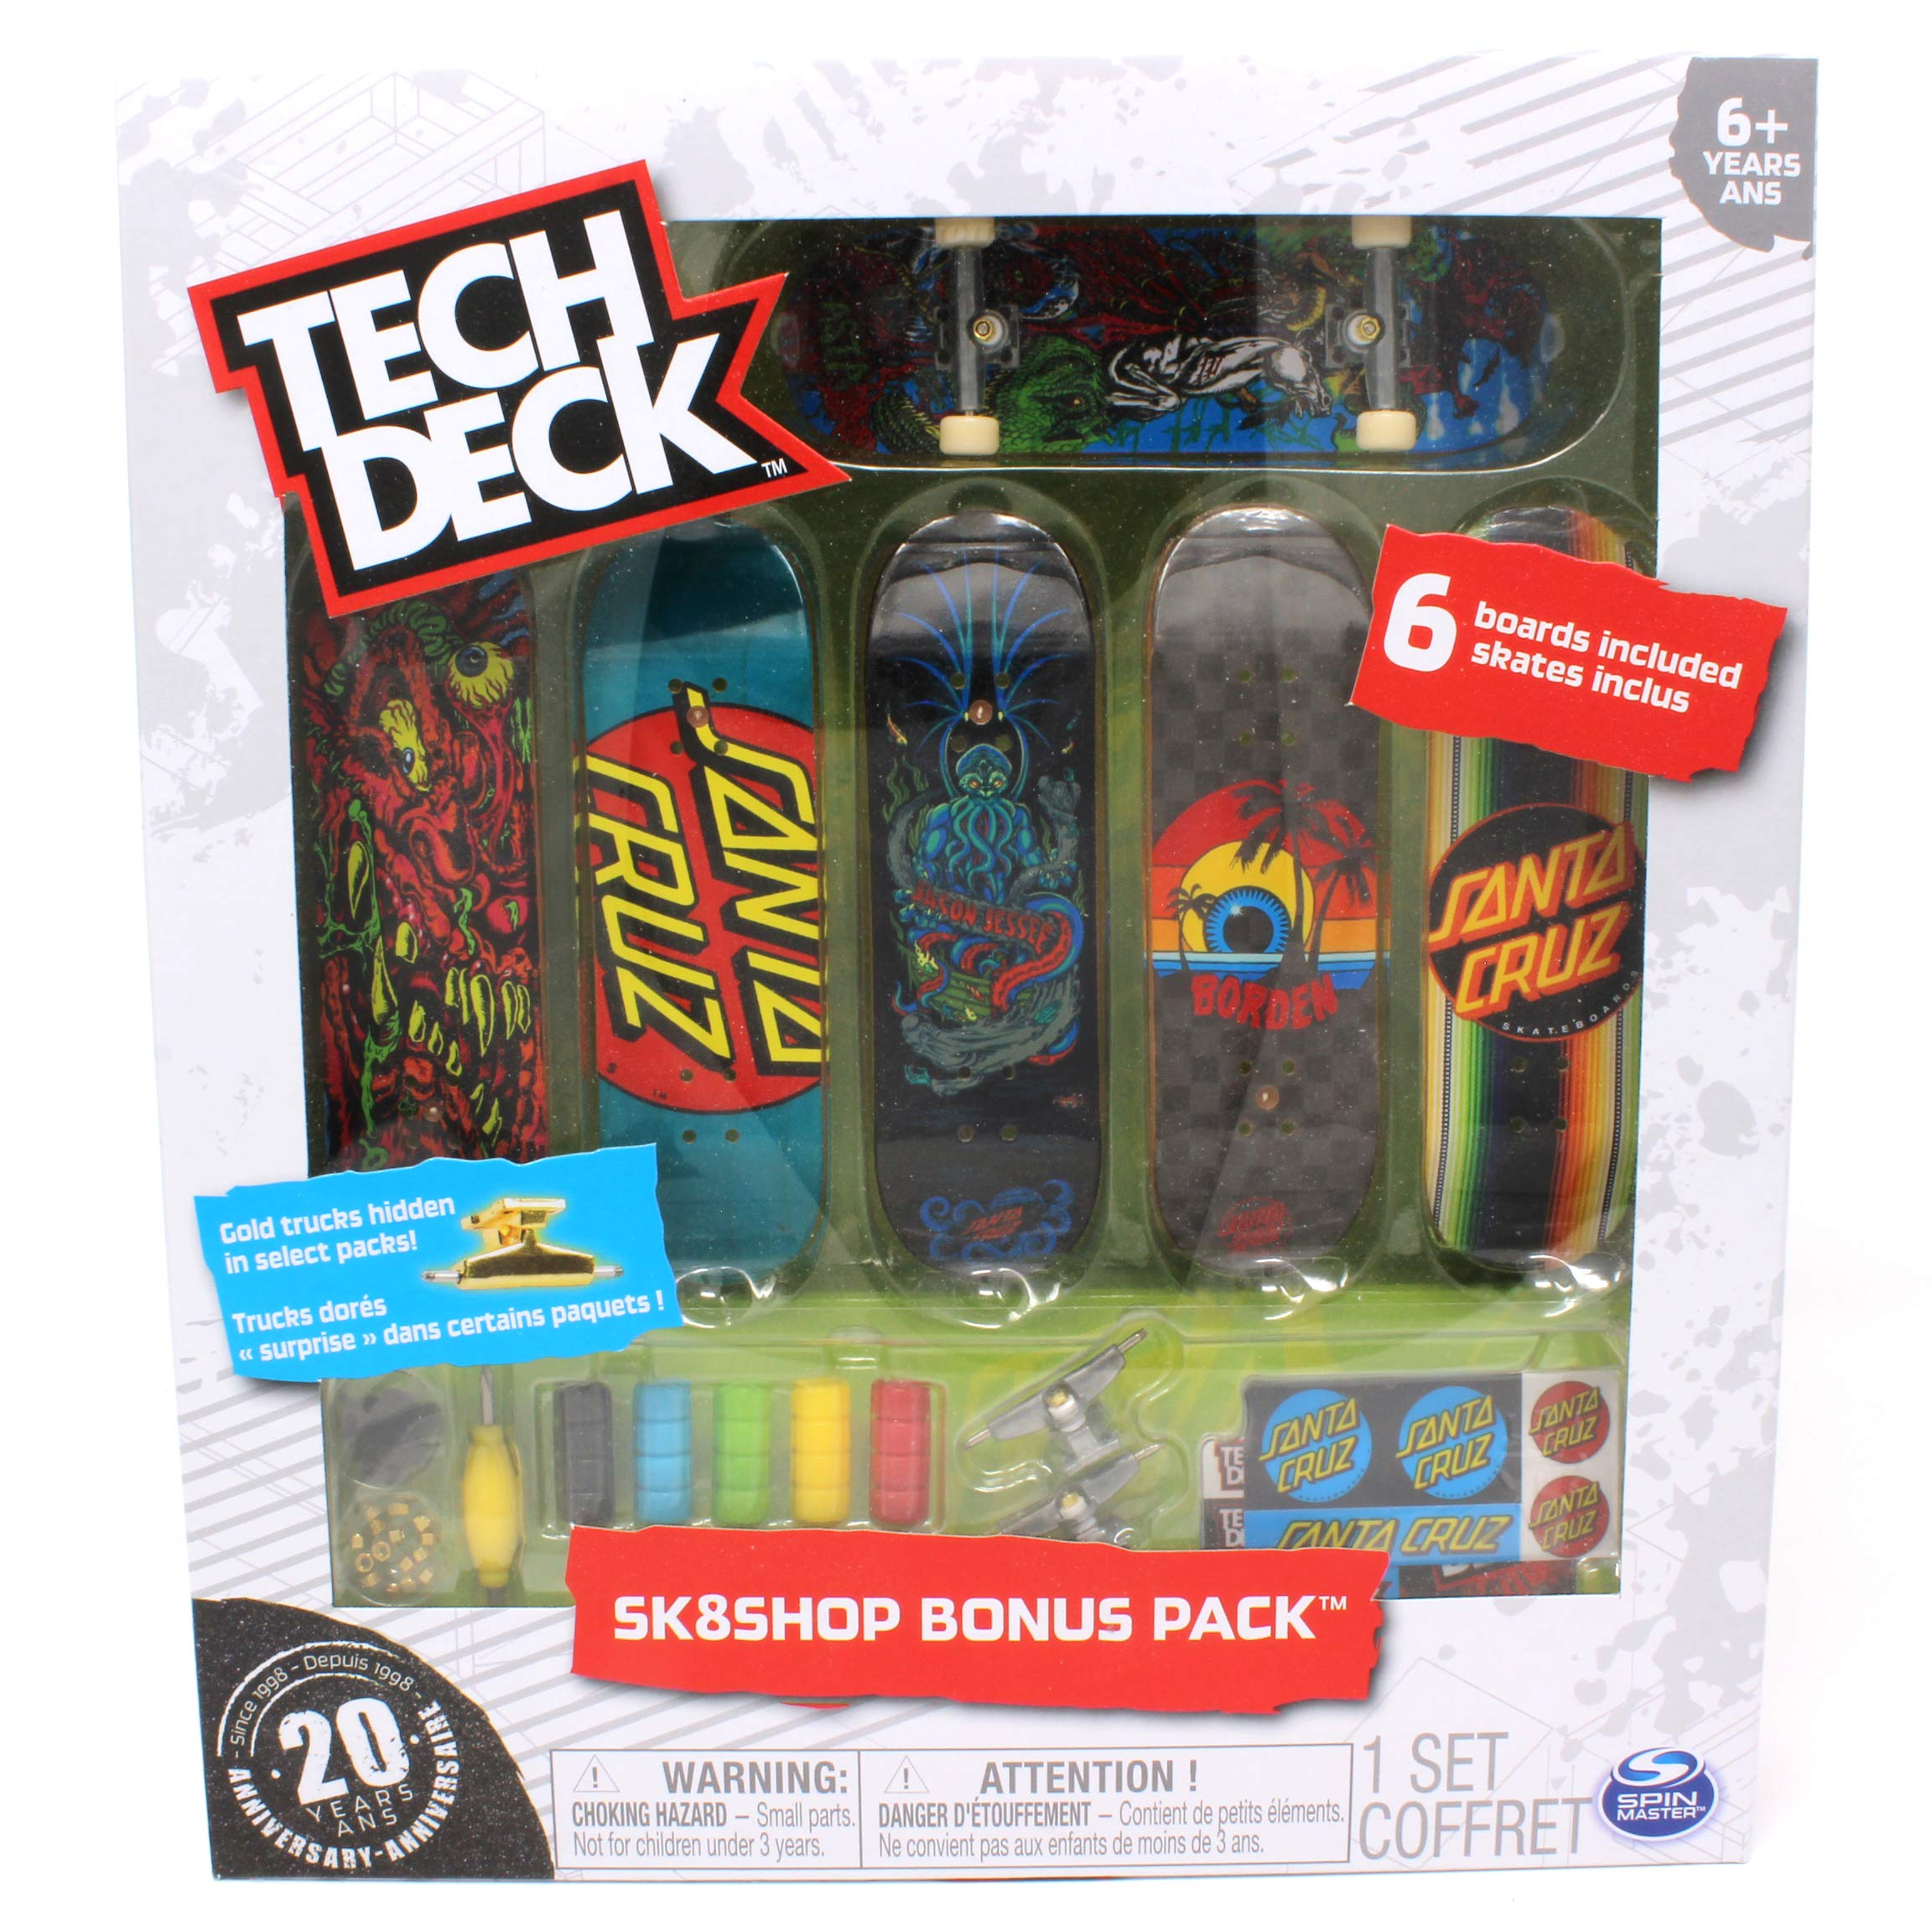 Tech Deck Santa Cruz Skateboarding Sk8shop Bonus Pack with 6 Fingerboards - 20th Anniversary by Tech Deck (Image #2)